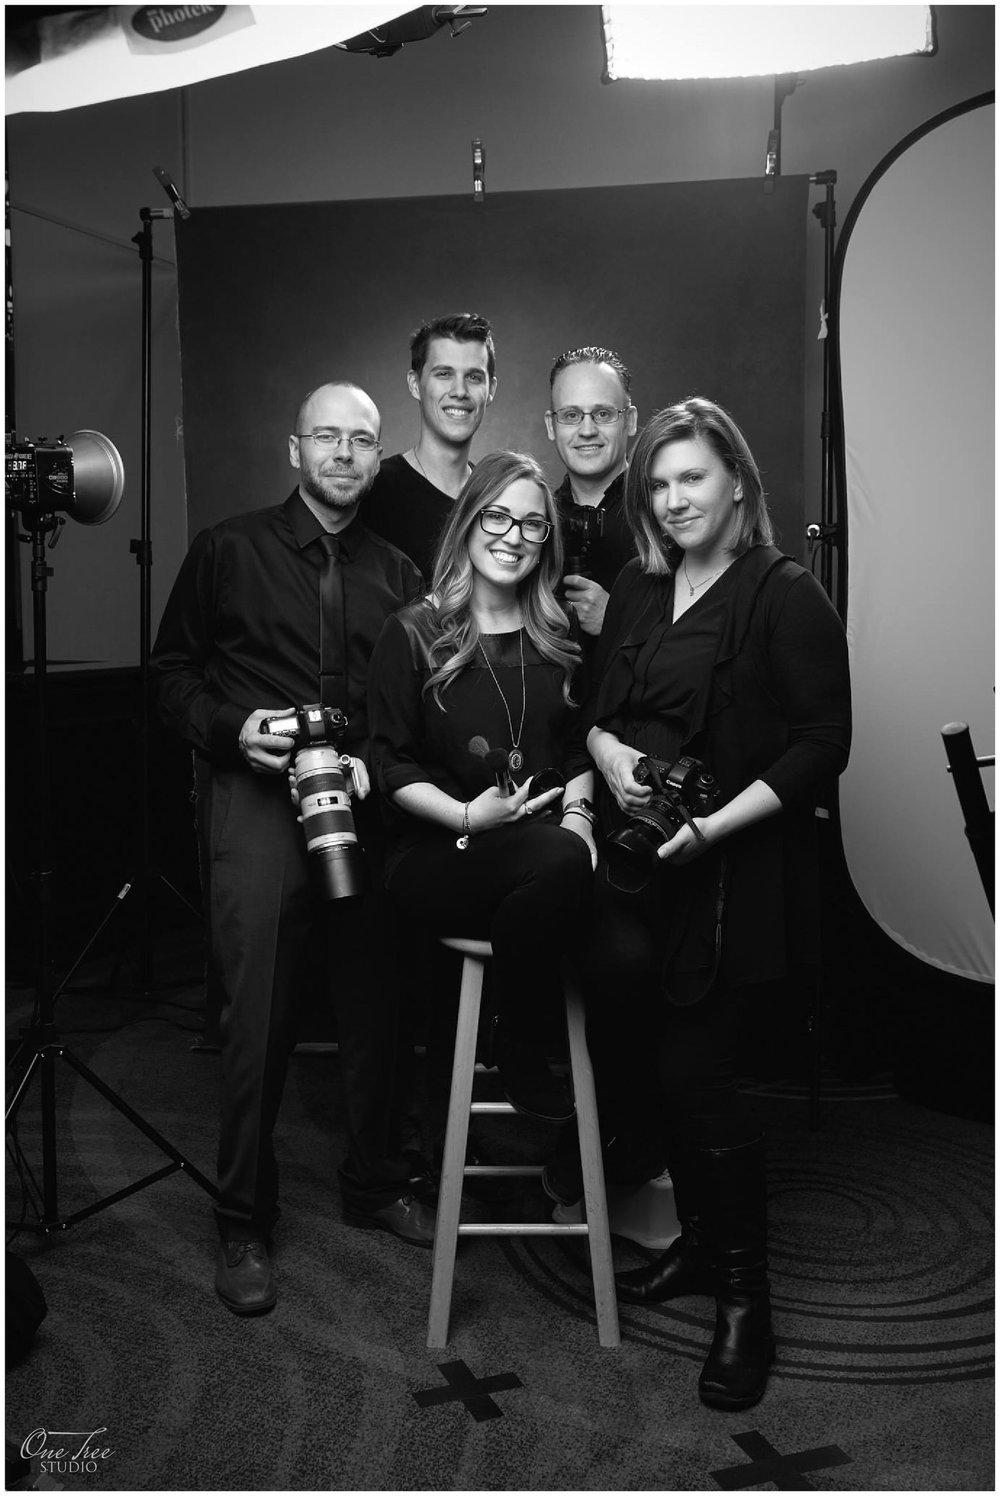 One Tree Studio's headshot team while providing headshots for Rogers Communications in February 2017.